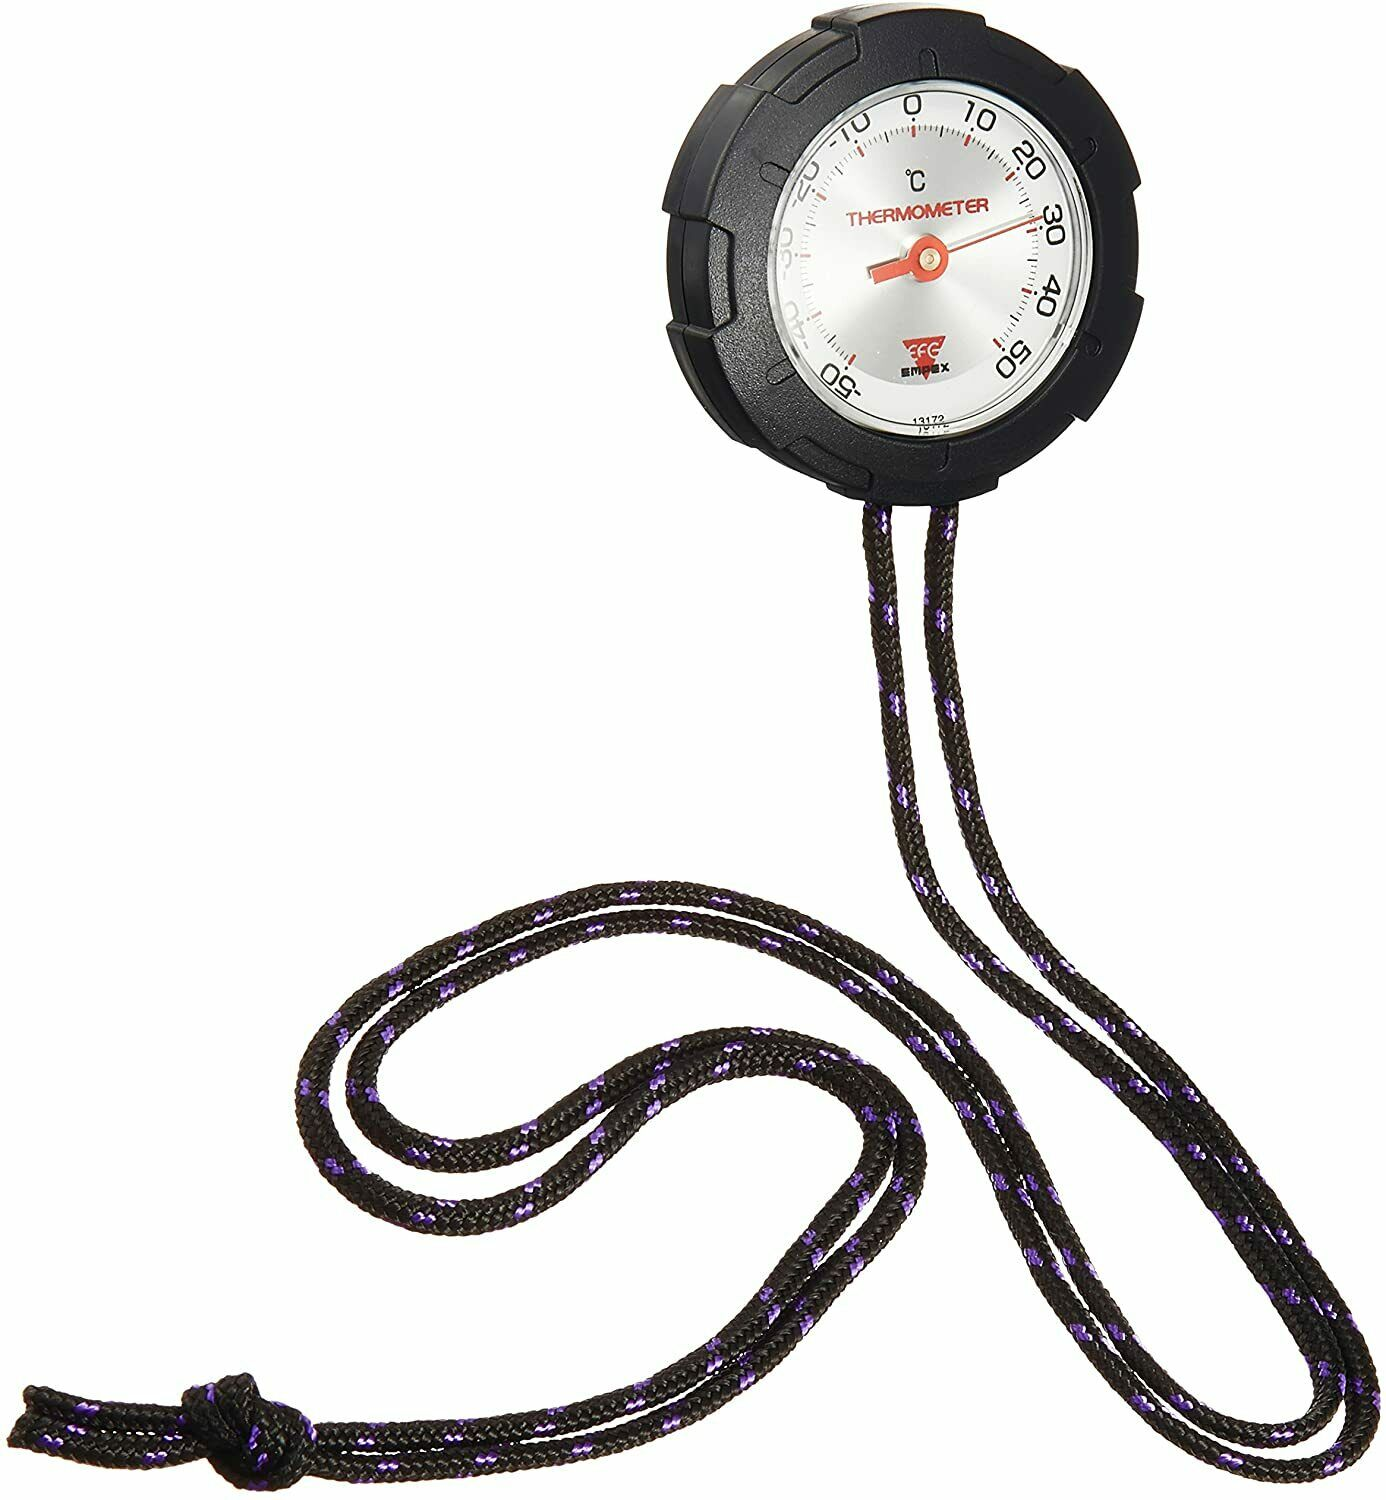 Empex FG-5152 Thermomax 50 Thermometer outdoor home décor simple analog style